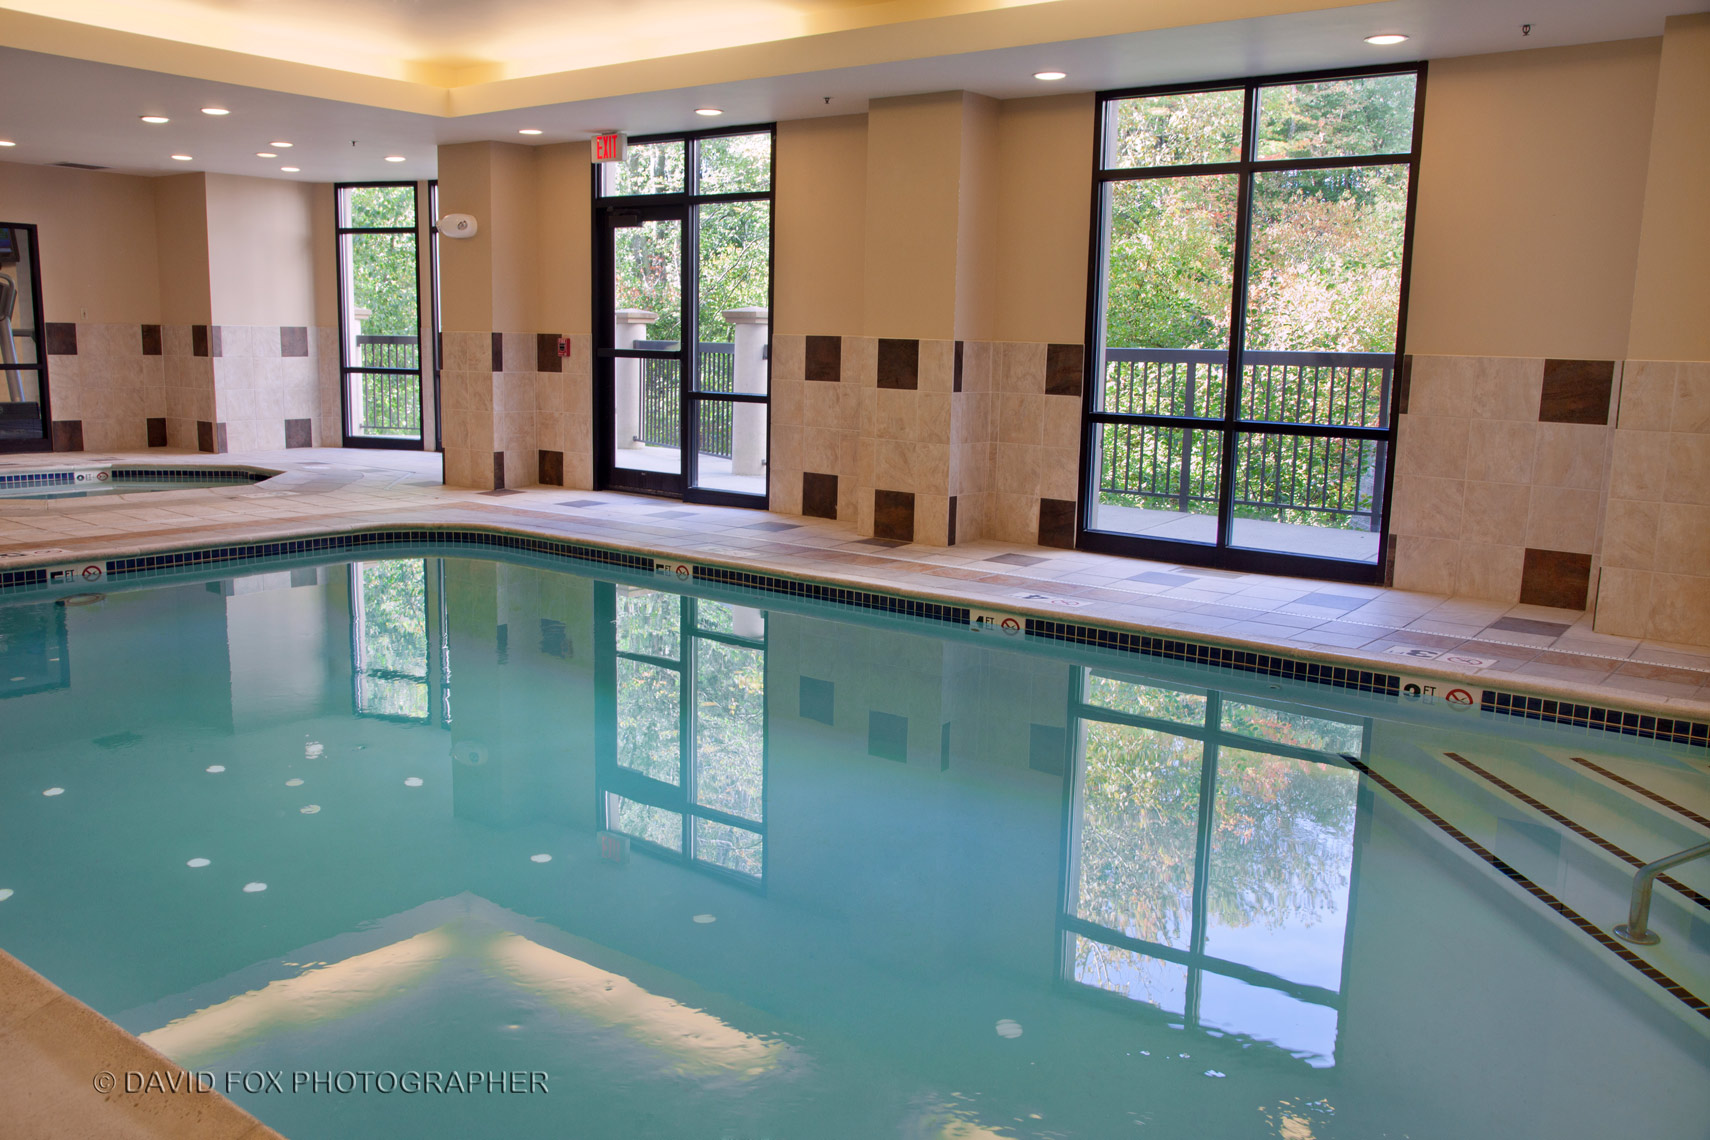 Indoor Pool Marriott Natick David Fox Photographer